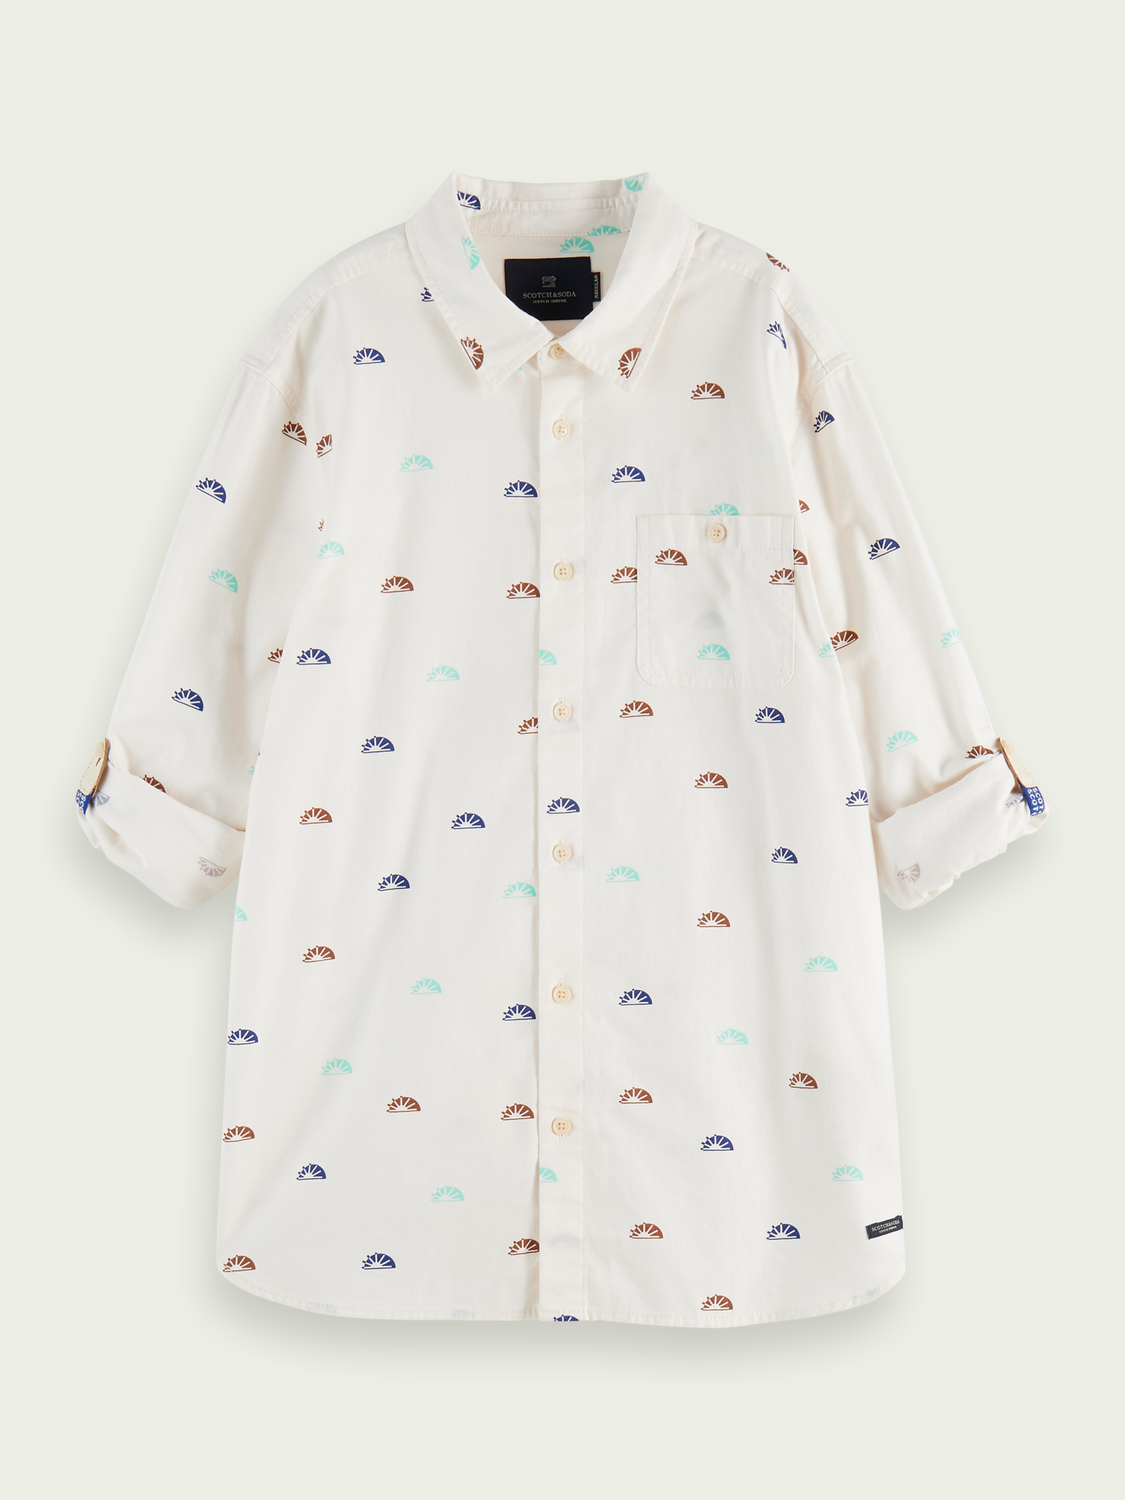 Boys 100% cotton rolled sleeve oxford shirt